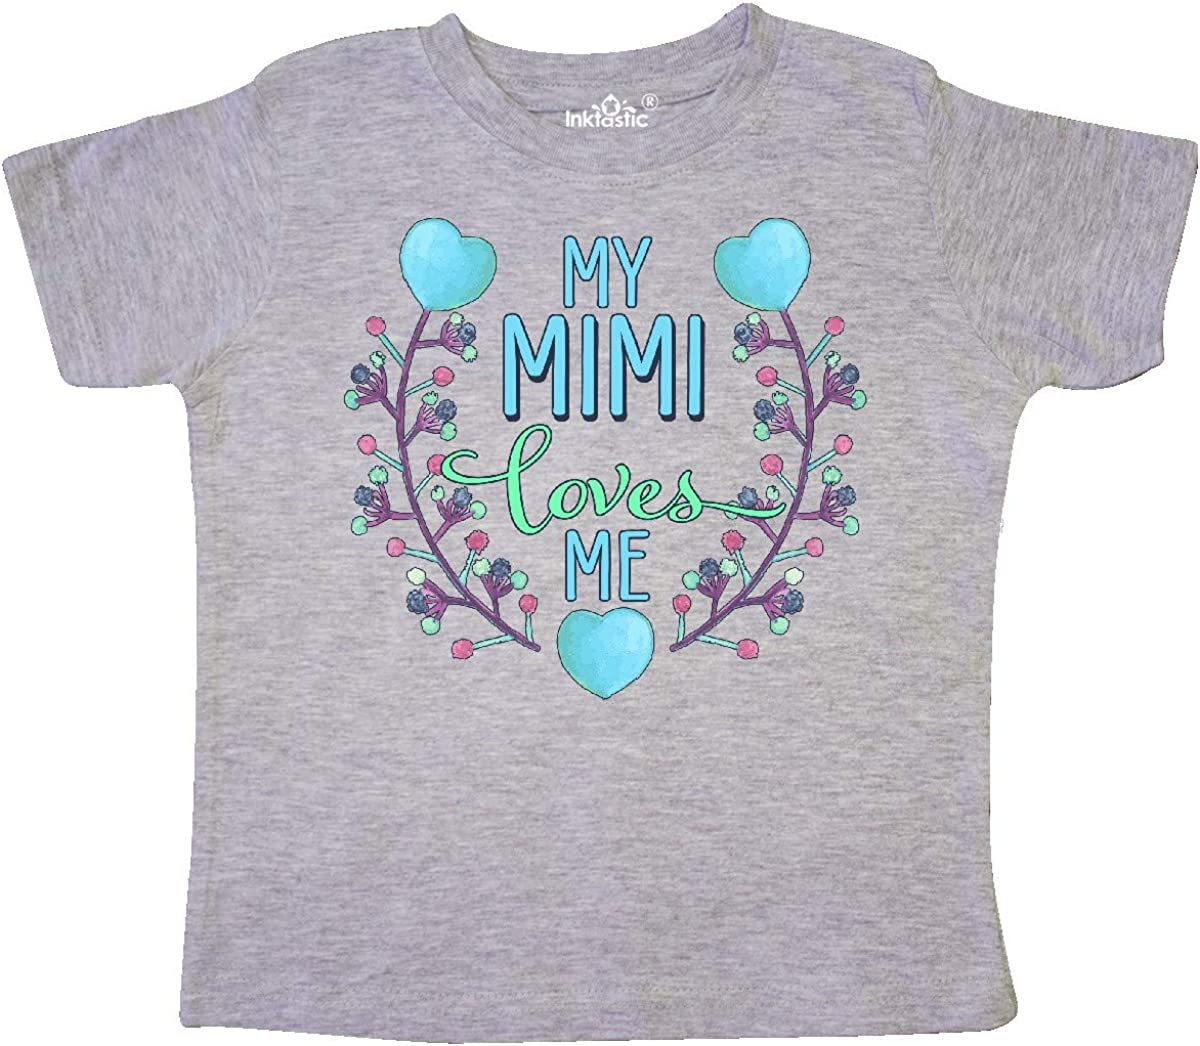 inktastic My Mimi Loves Mimi with Flowers and Hearts Toddler T-Shirt